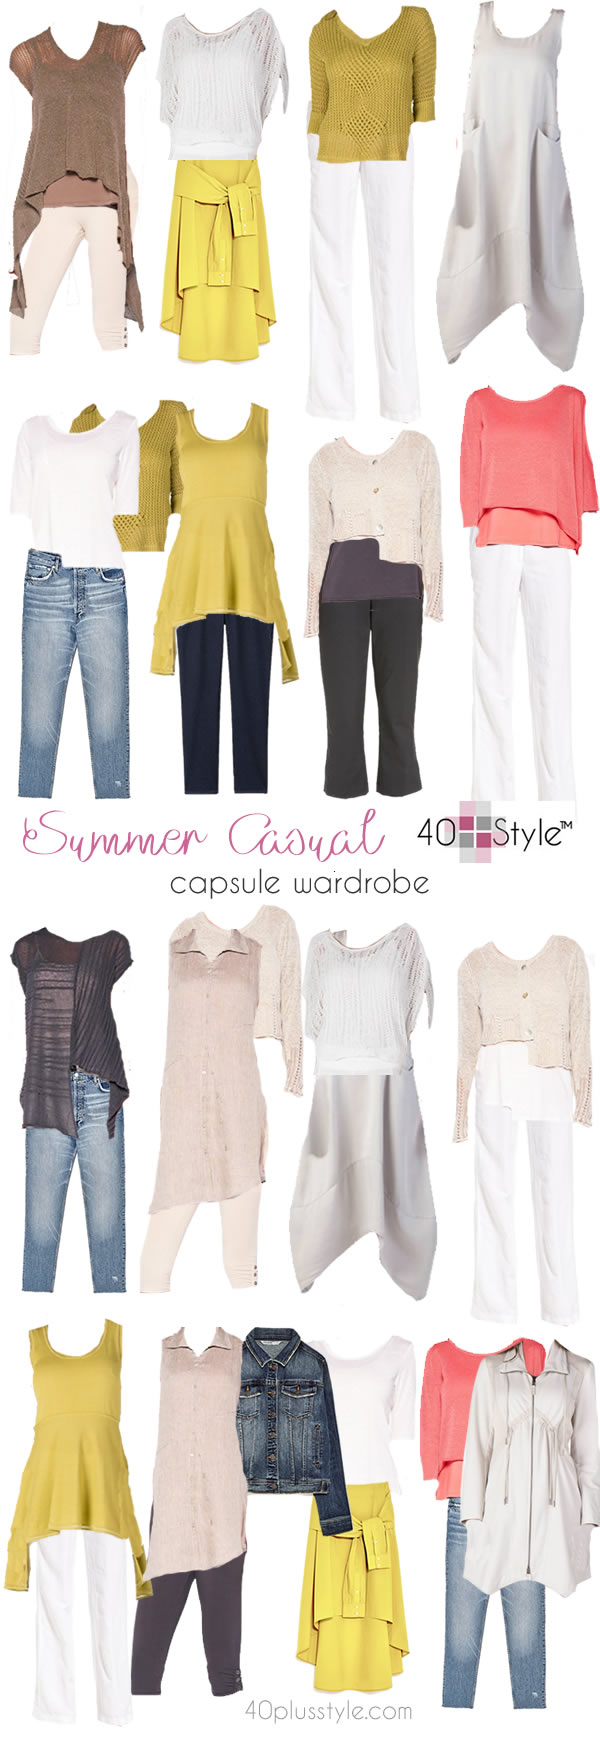 Lots of outfit options in this casual capsule wardrobe for summer | 40plusstyle.com